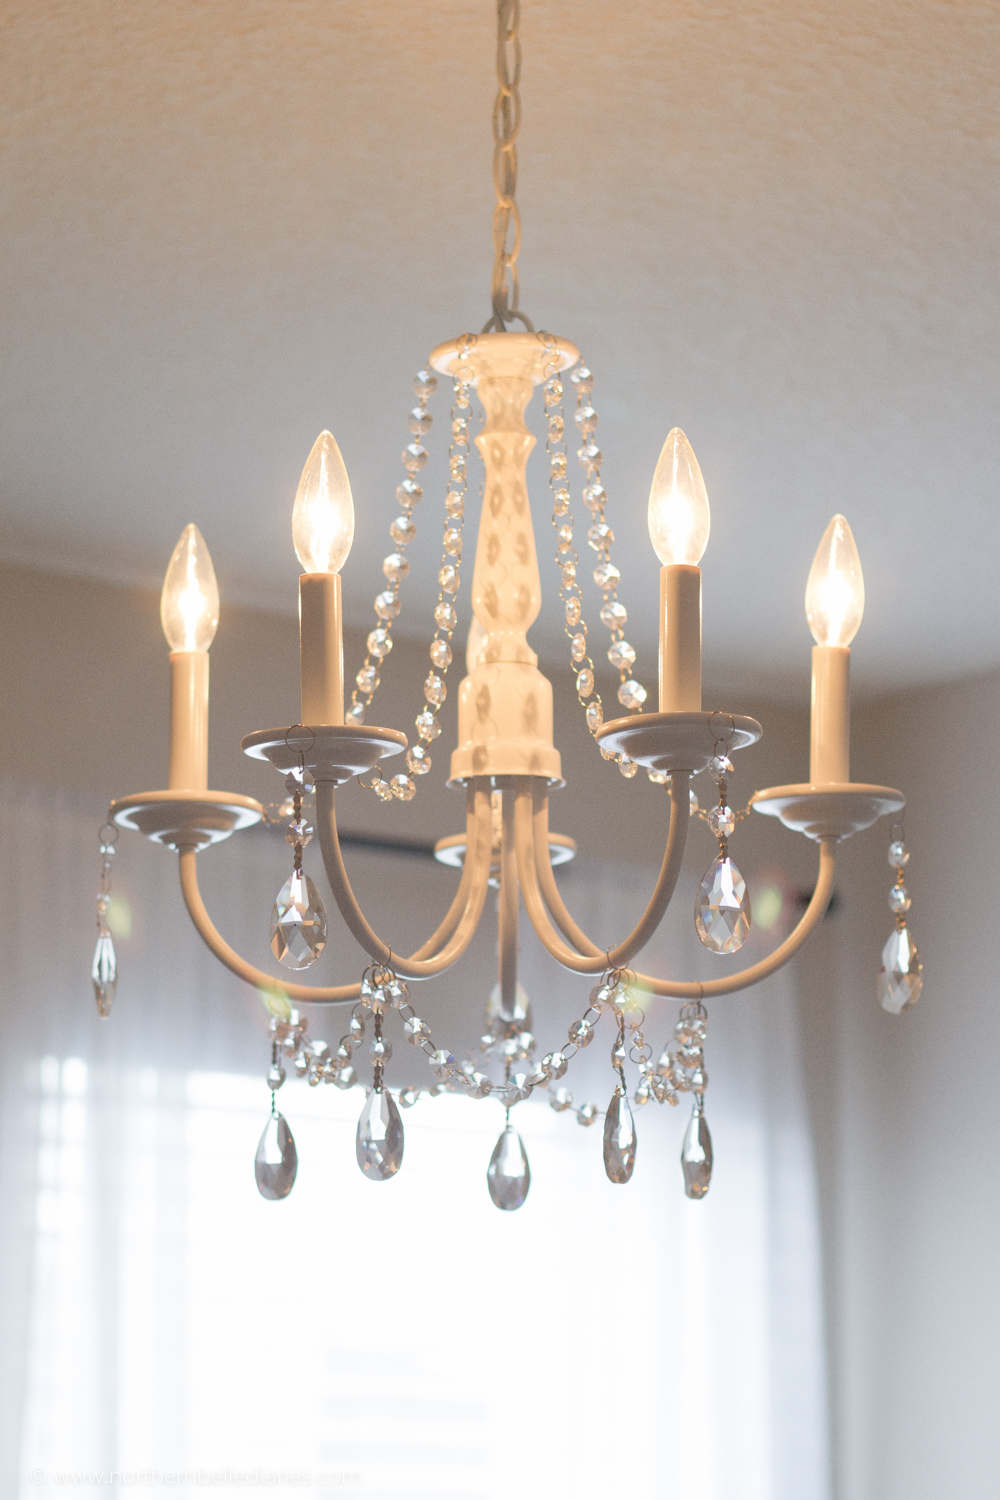 Unique You can make your own DIY crystal chandelier This site shows you how